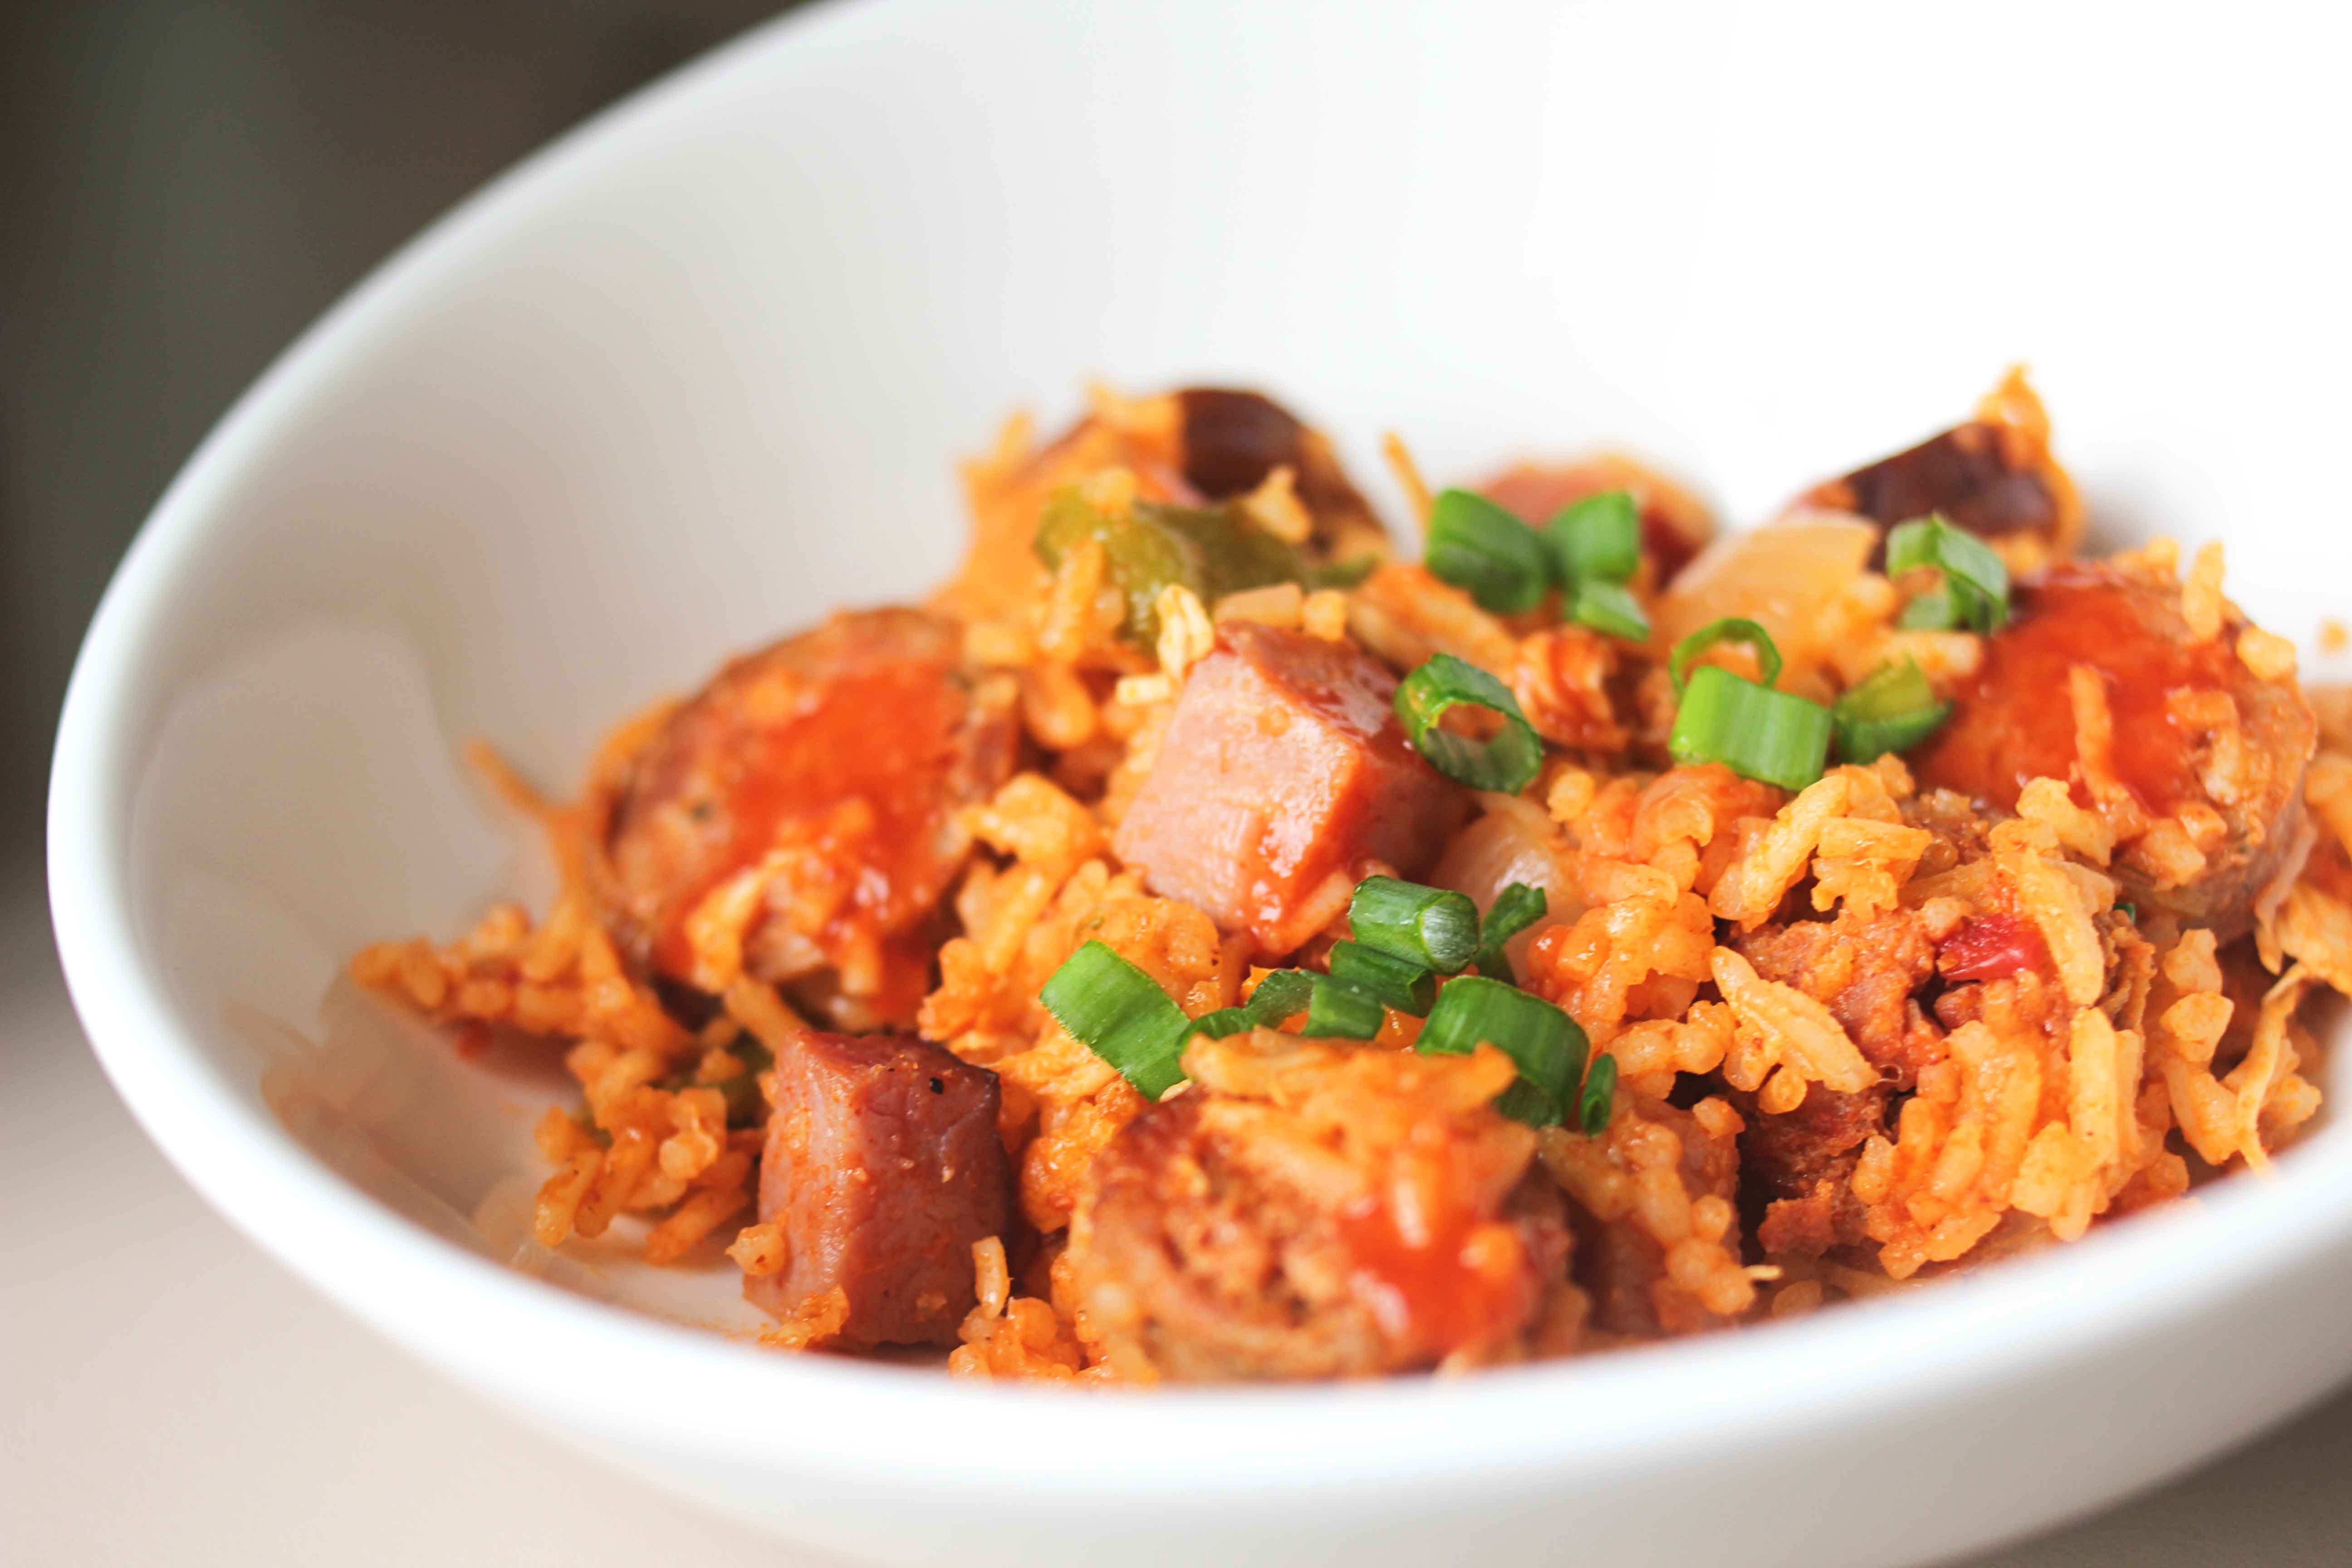 Touchdown creole jambalaya with pulled chicken sausage and diced